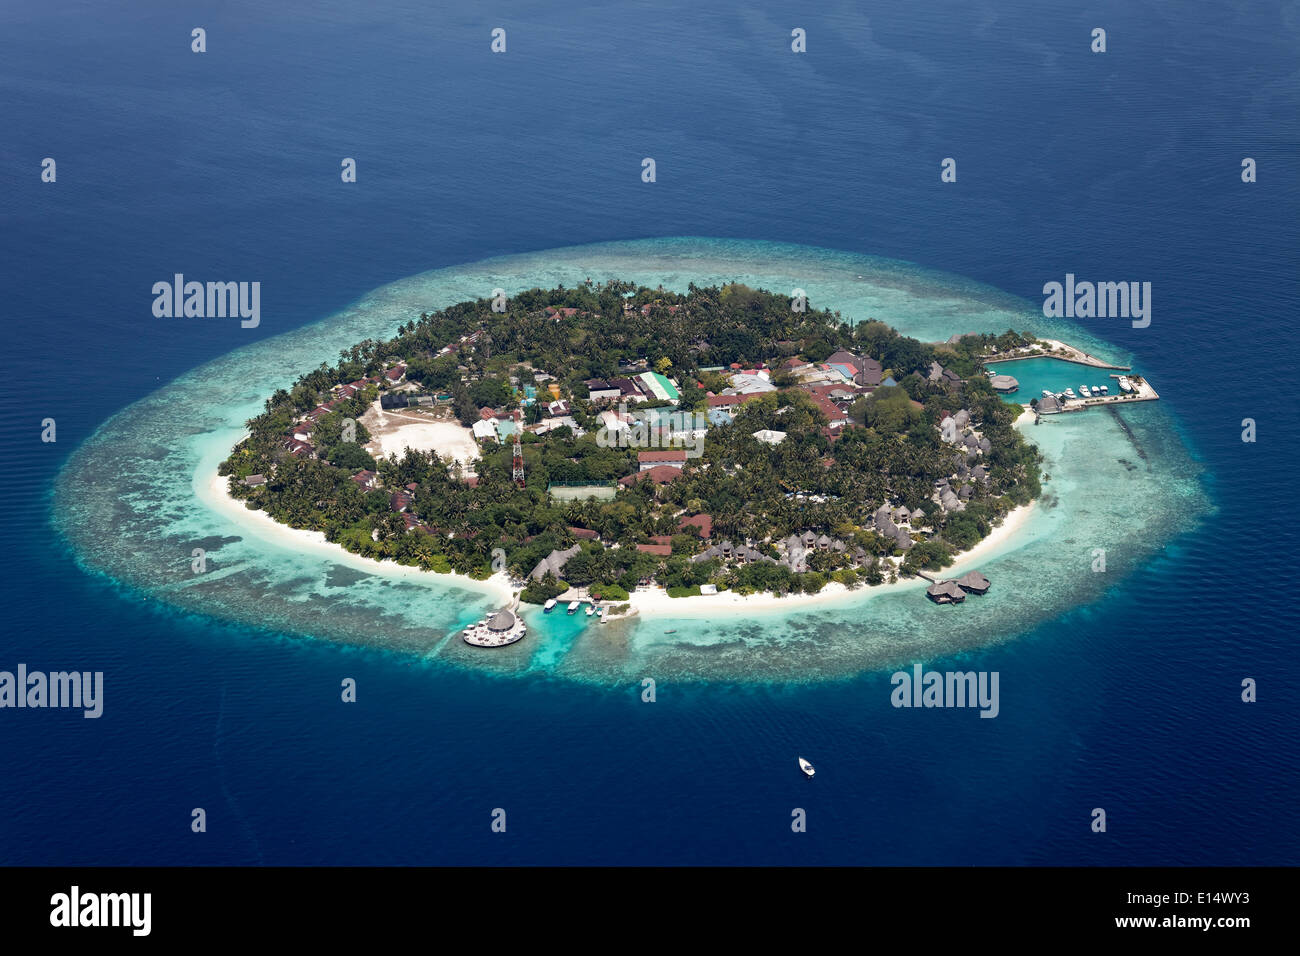 Aerial view, Bandos Island, North Malé Atoll, Indian Ocean, Maldives - Stock Image